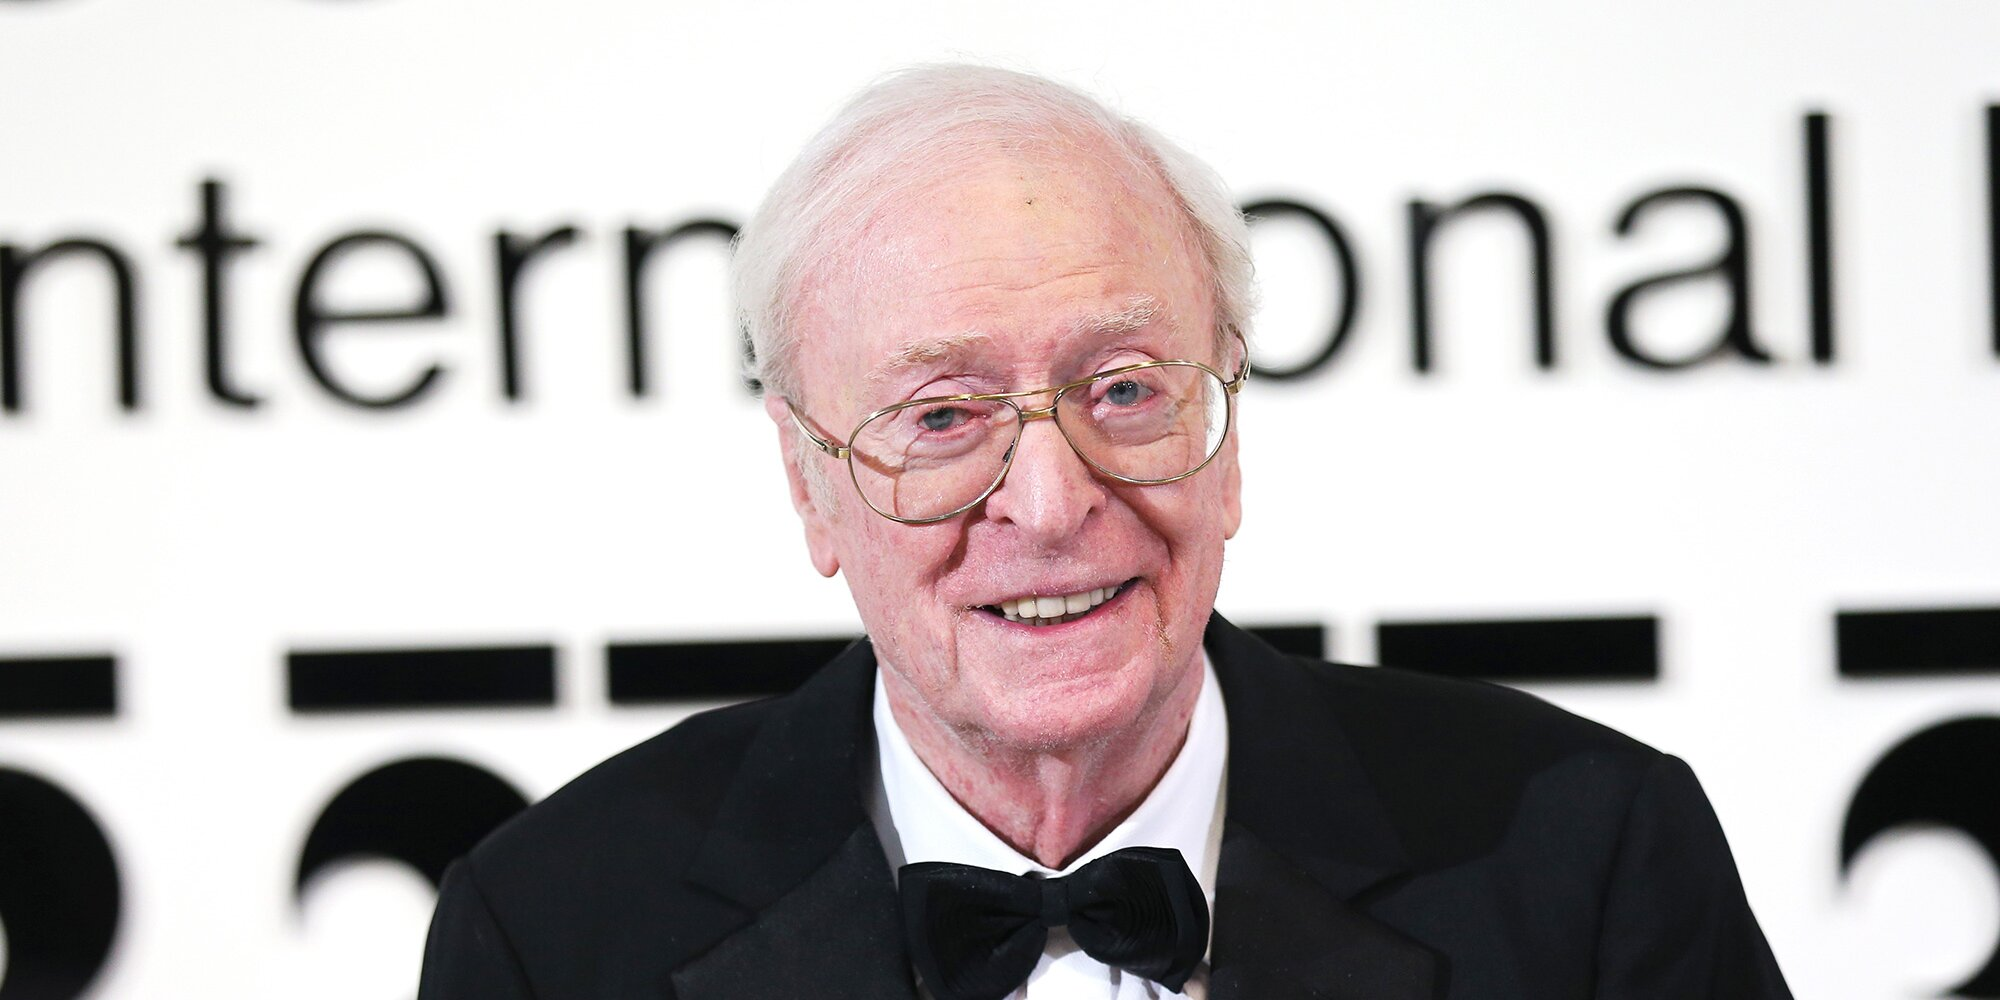 Sir Michael Caine Announces Retirement from Acting After Playing His 'Last Part' in Best Sellers